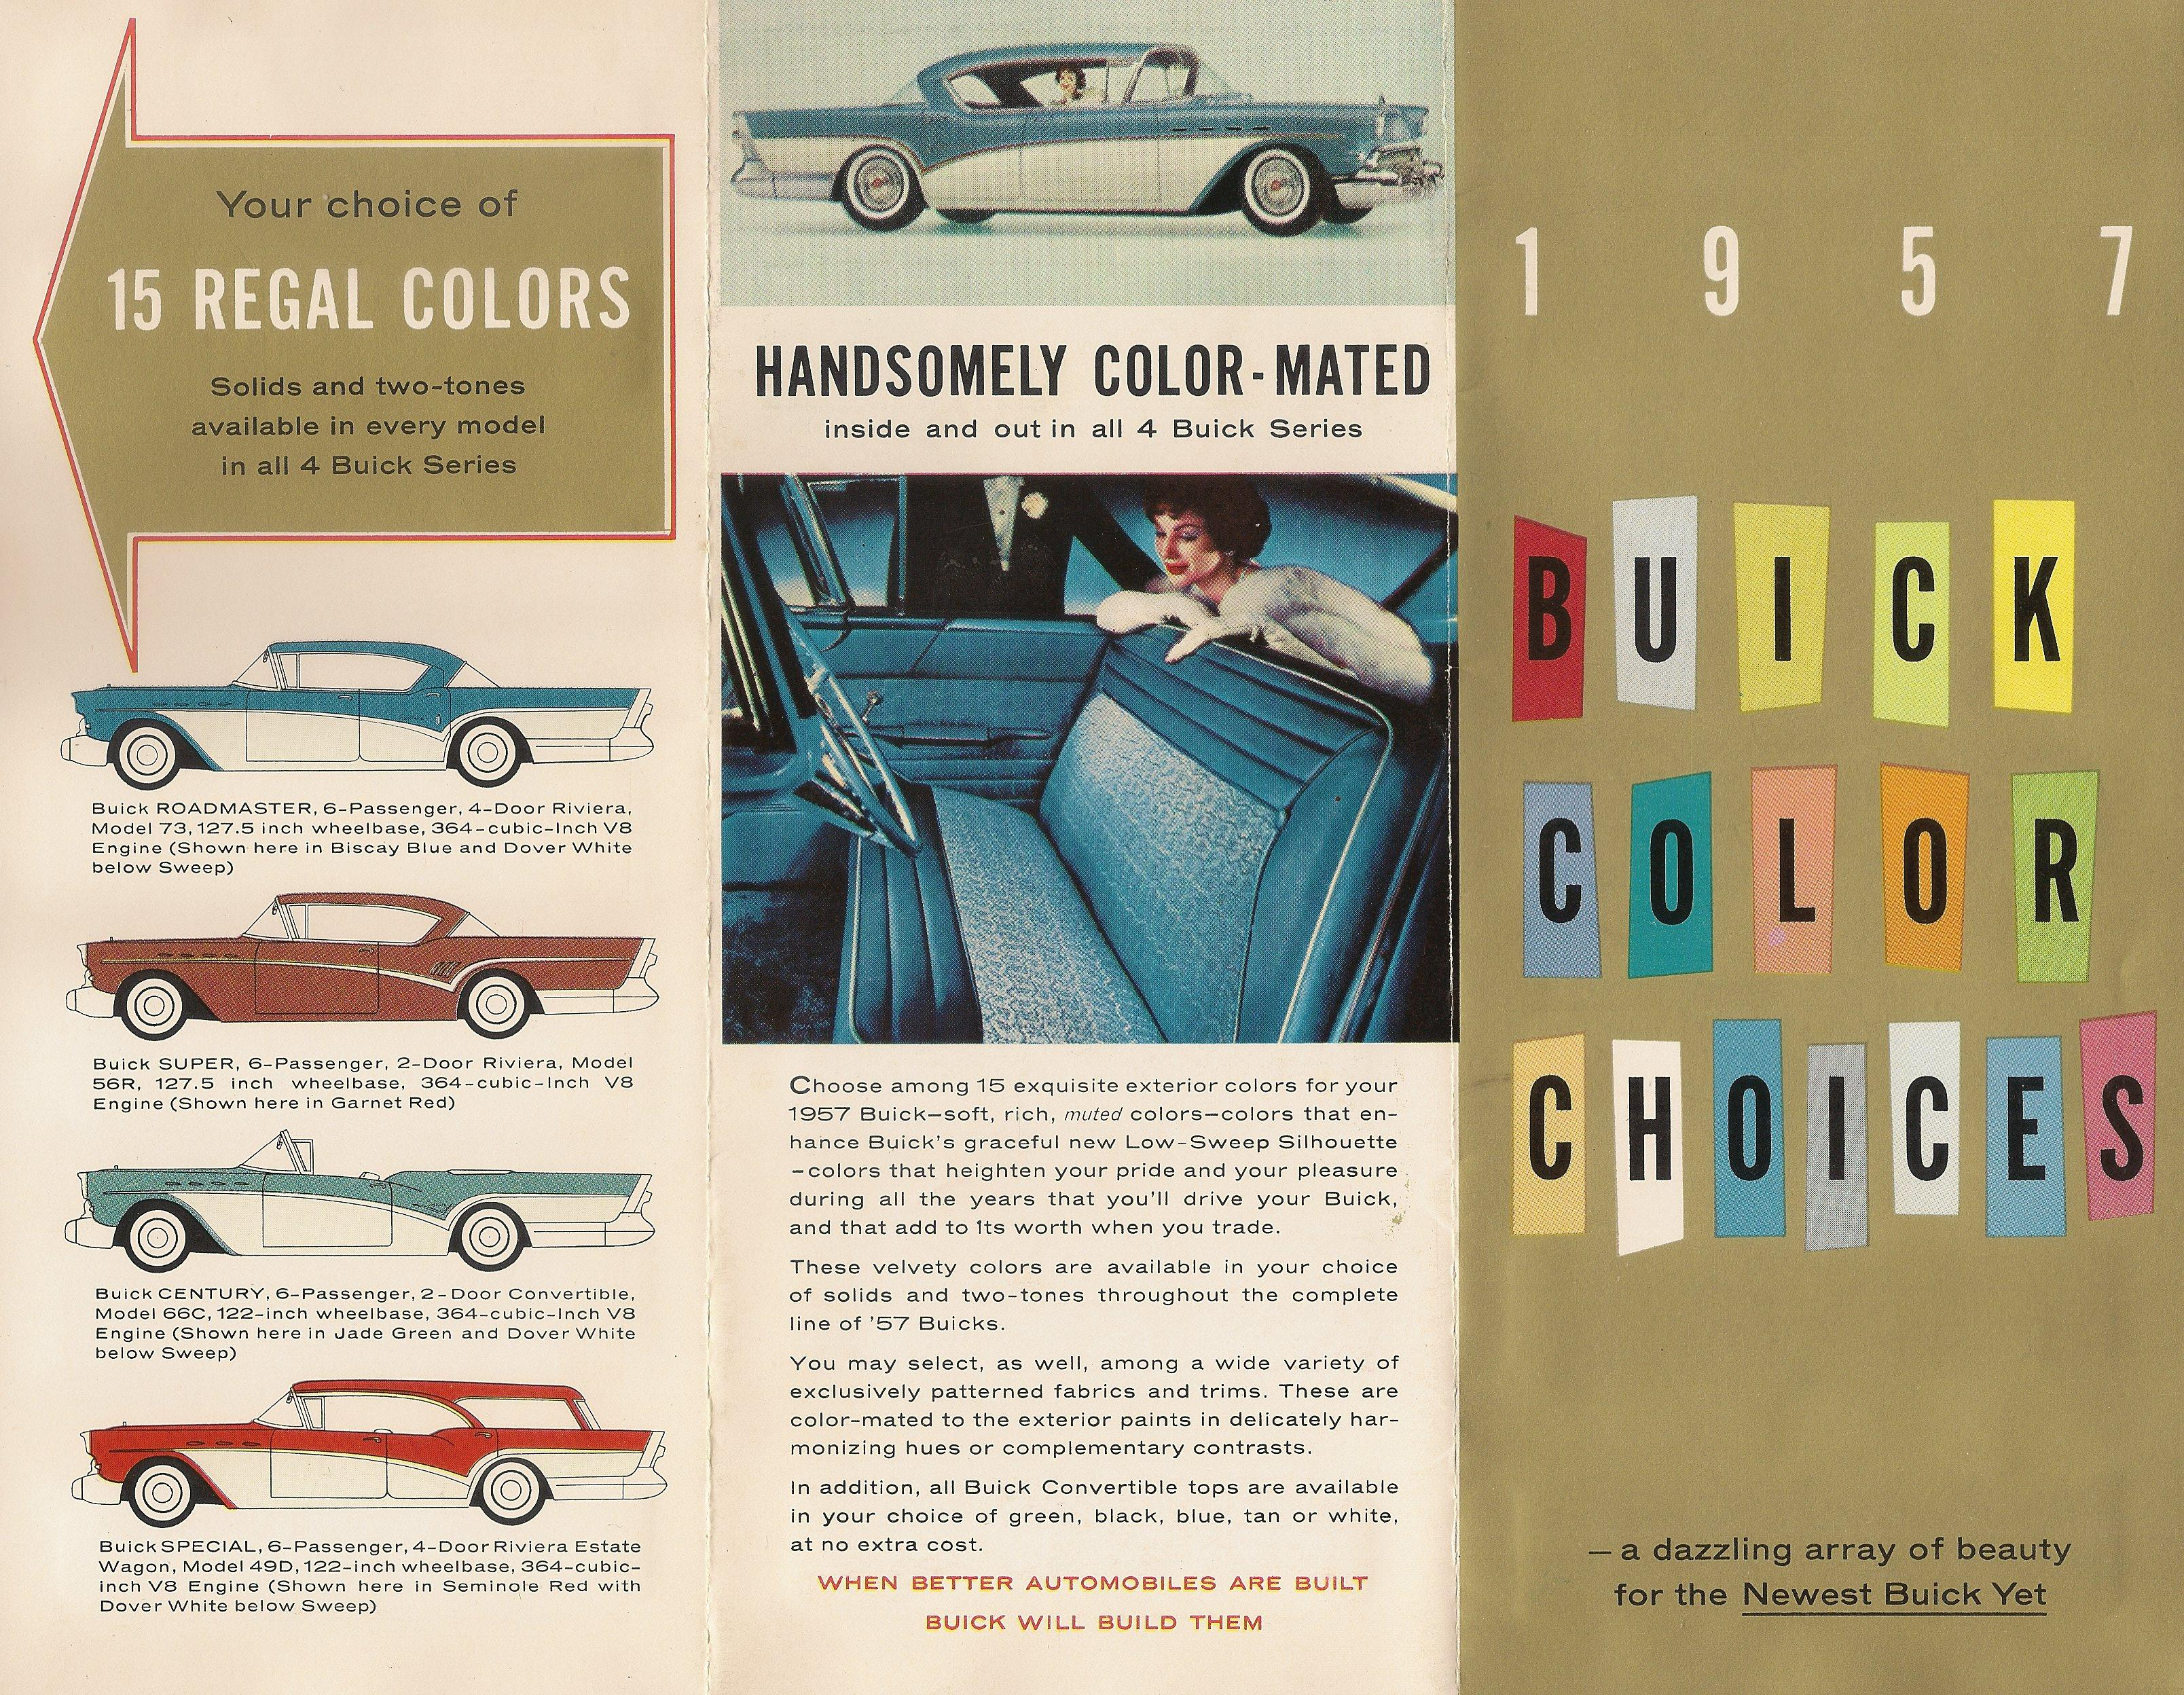 Colors For 1957 Garnet Red Versus Bittersweet Buick Post War Chevy Color Chart Choices Initial Rev Page 2